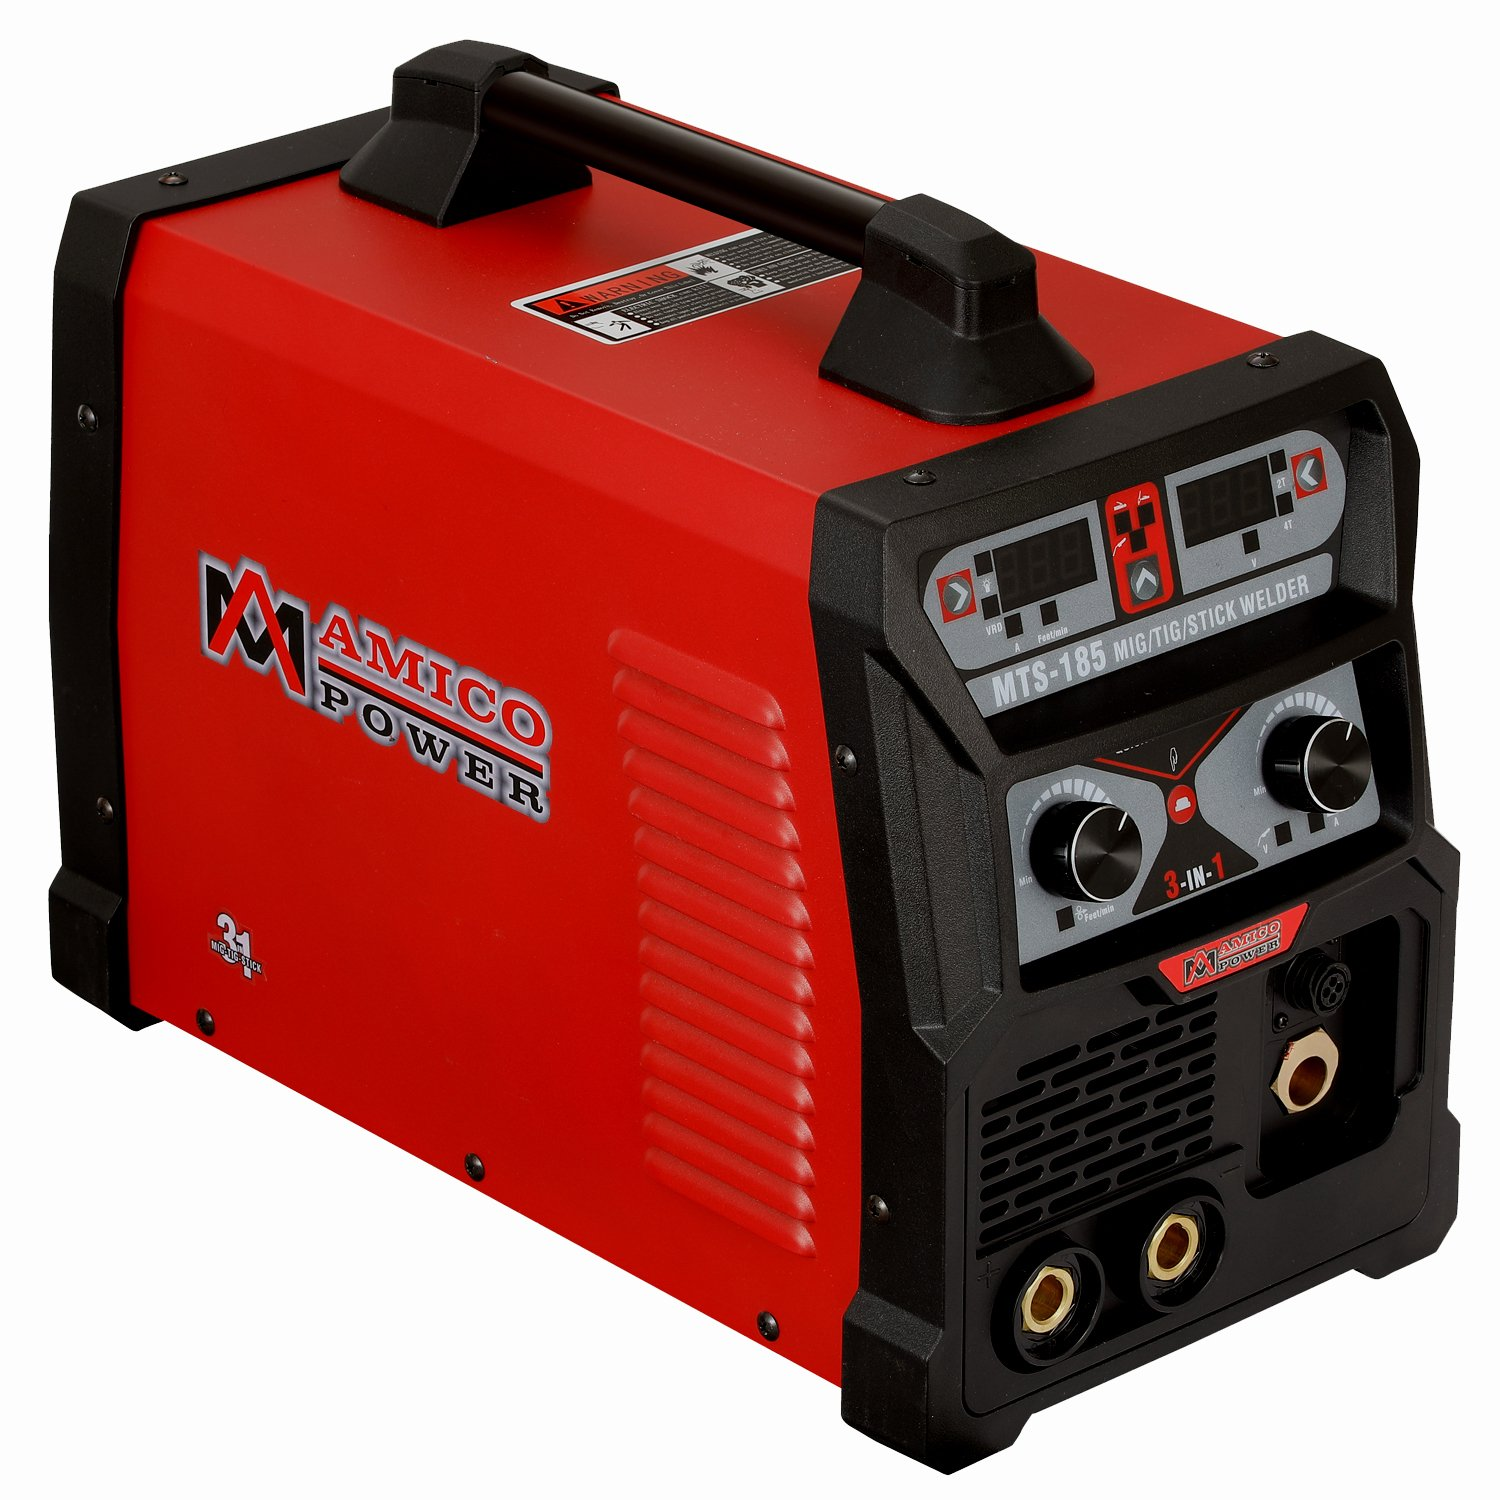 MTS-185, 185 Amp MIG TIG-Torch Stick Arc Combo Welder, Weld Aluminum(MIG) 110/230V Dual Voltage Welding New